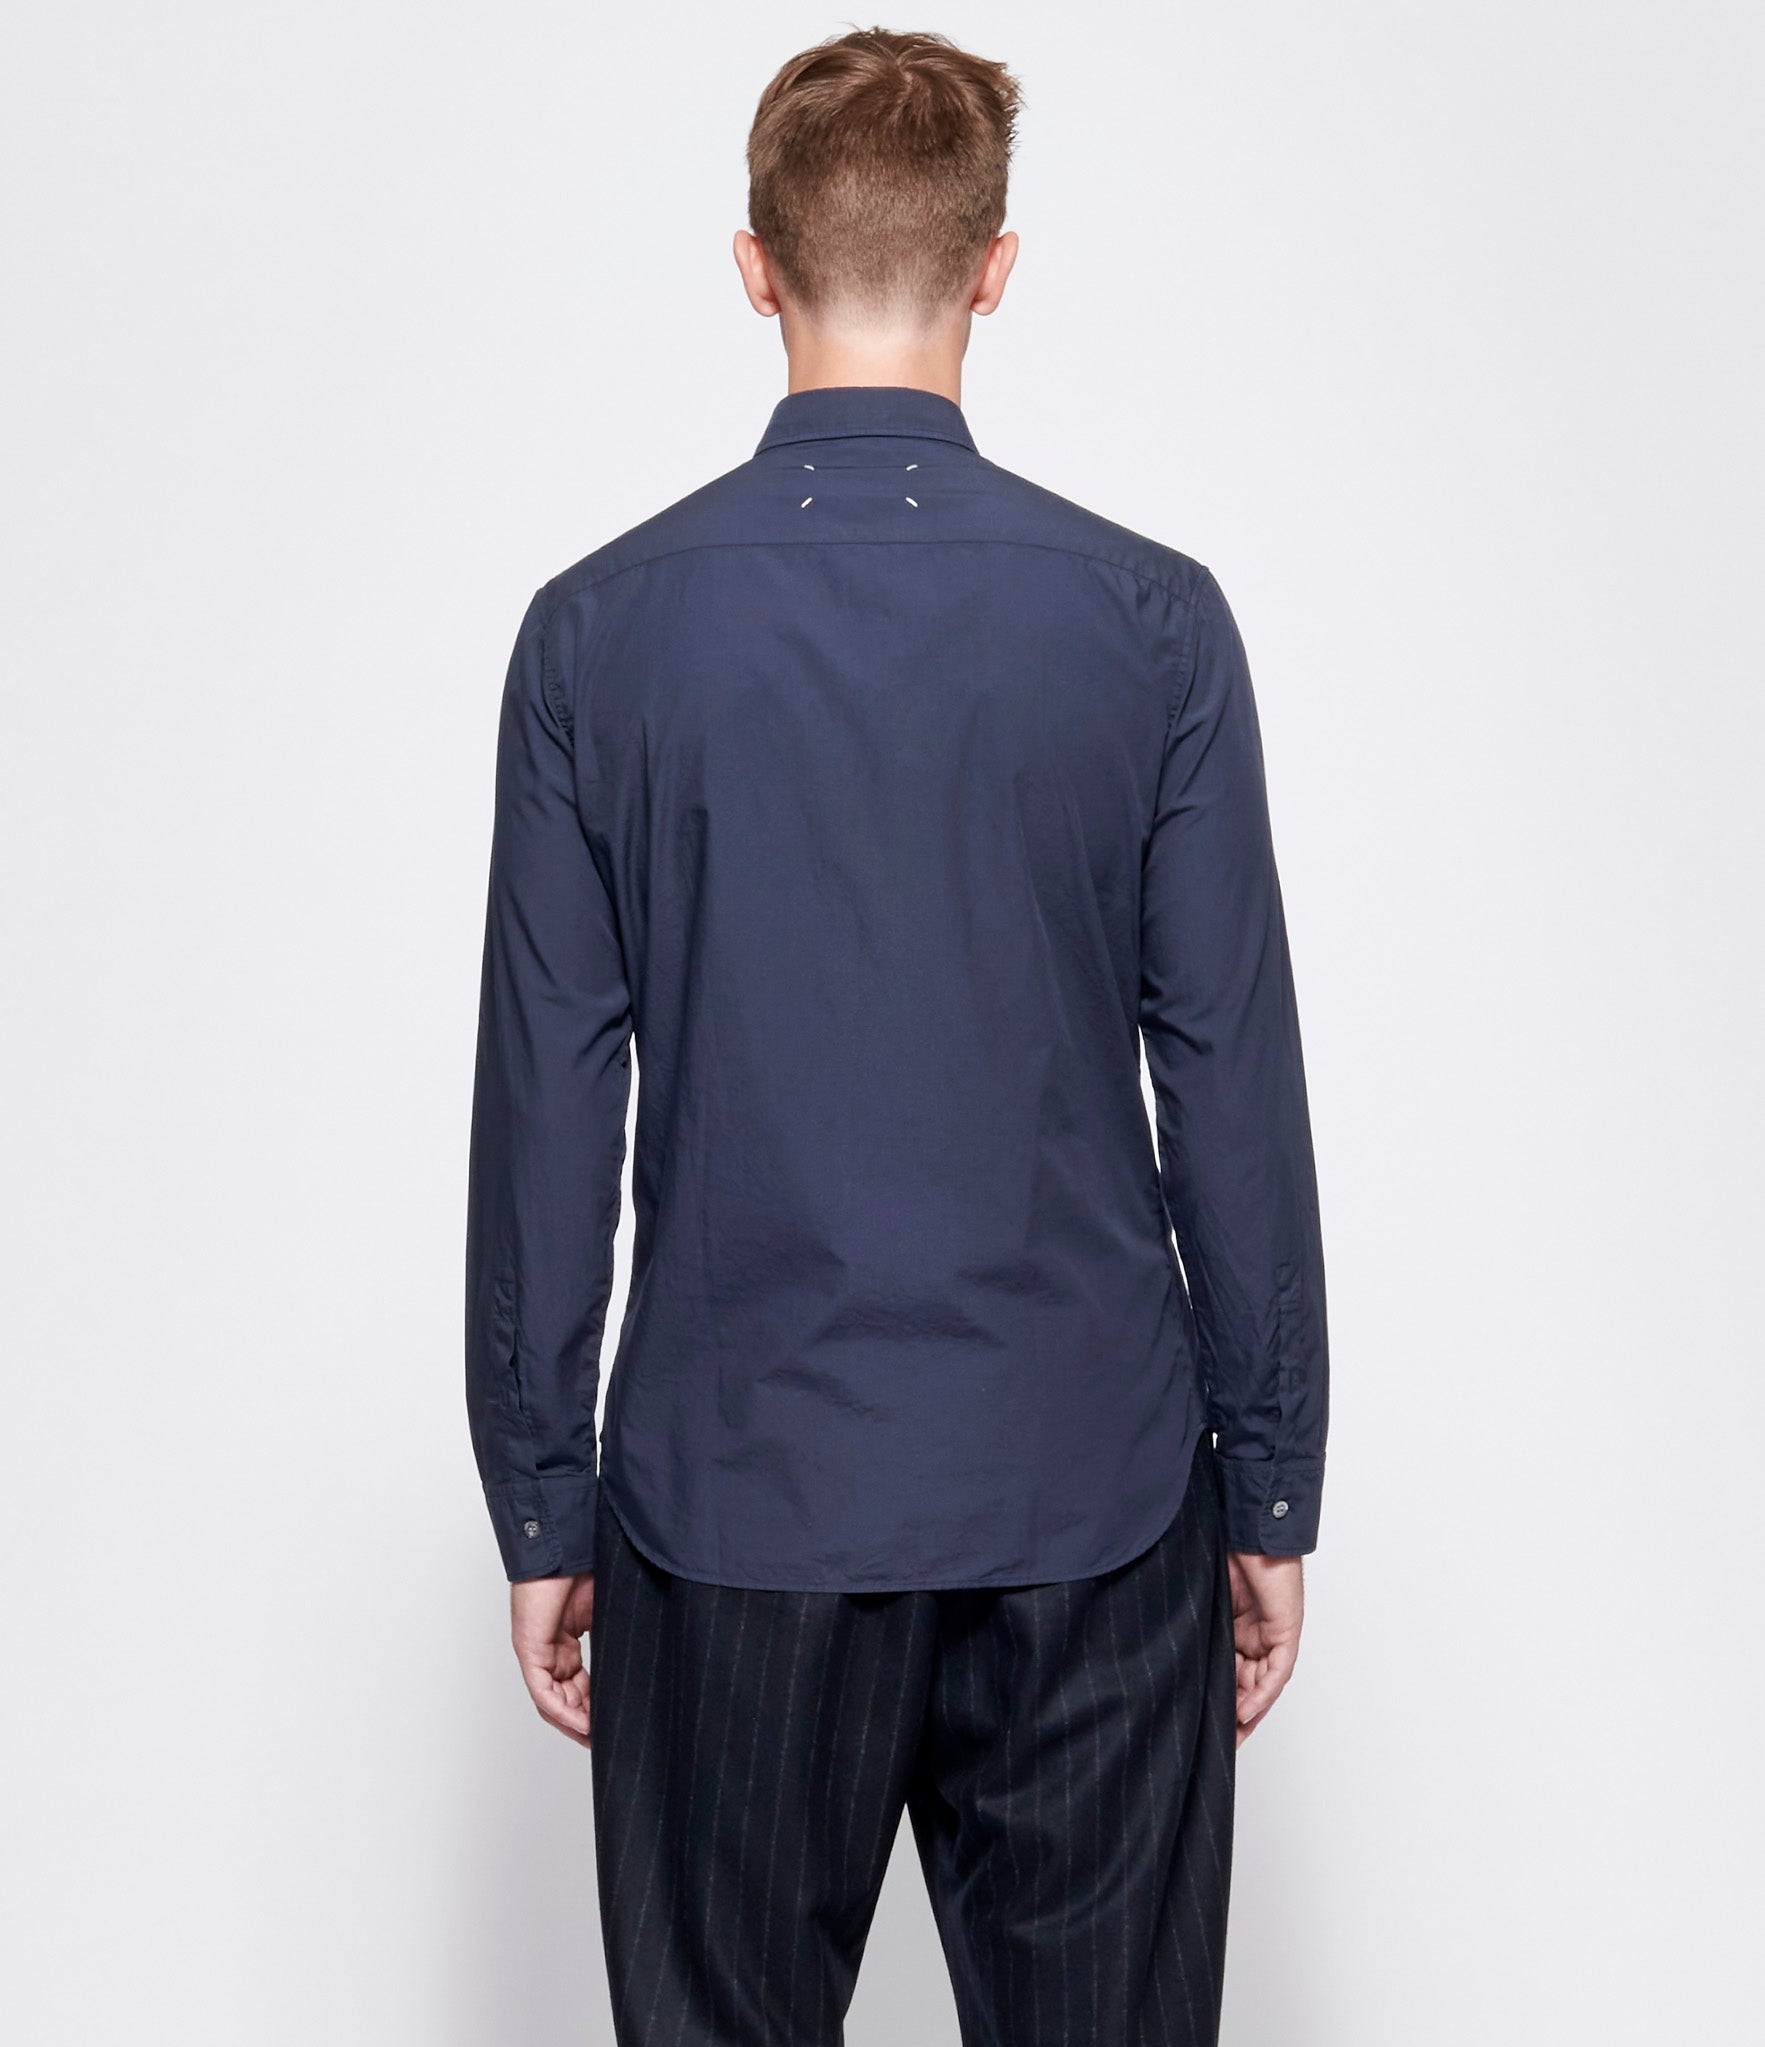 Maison Margiela Navy Garment Dyed Shirt